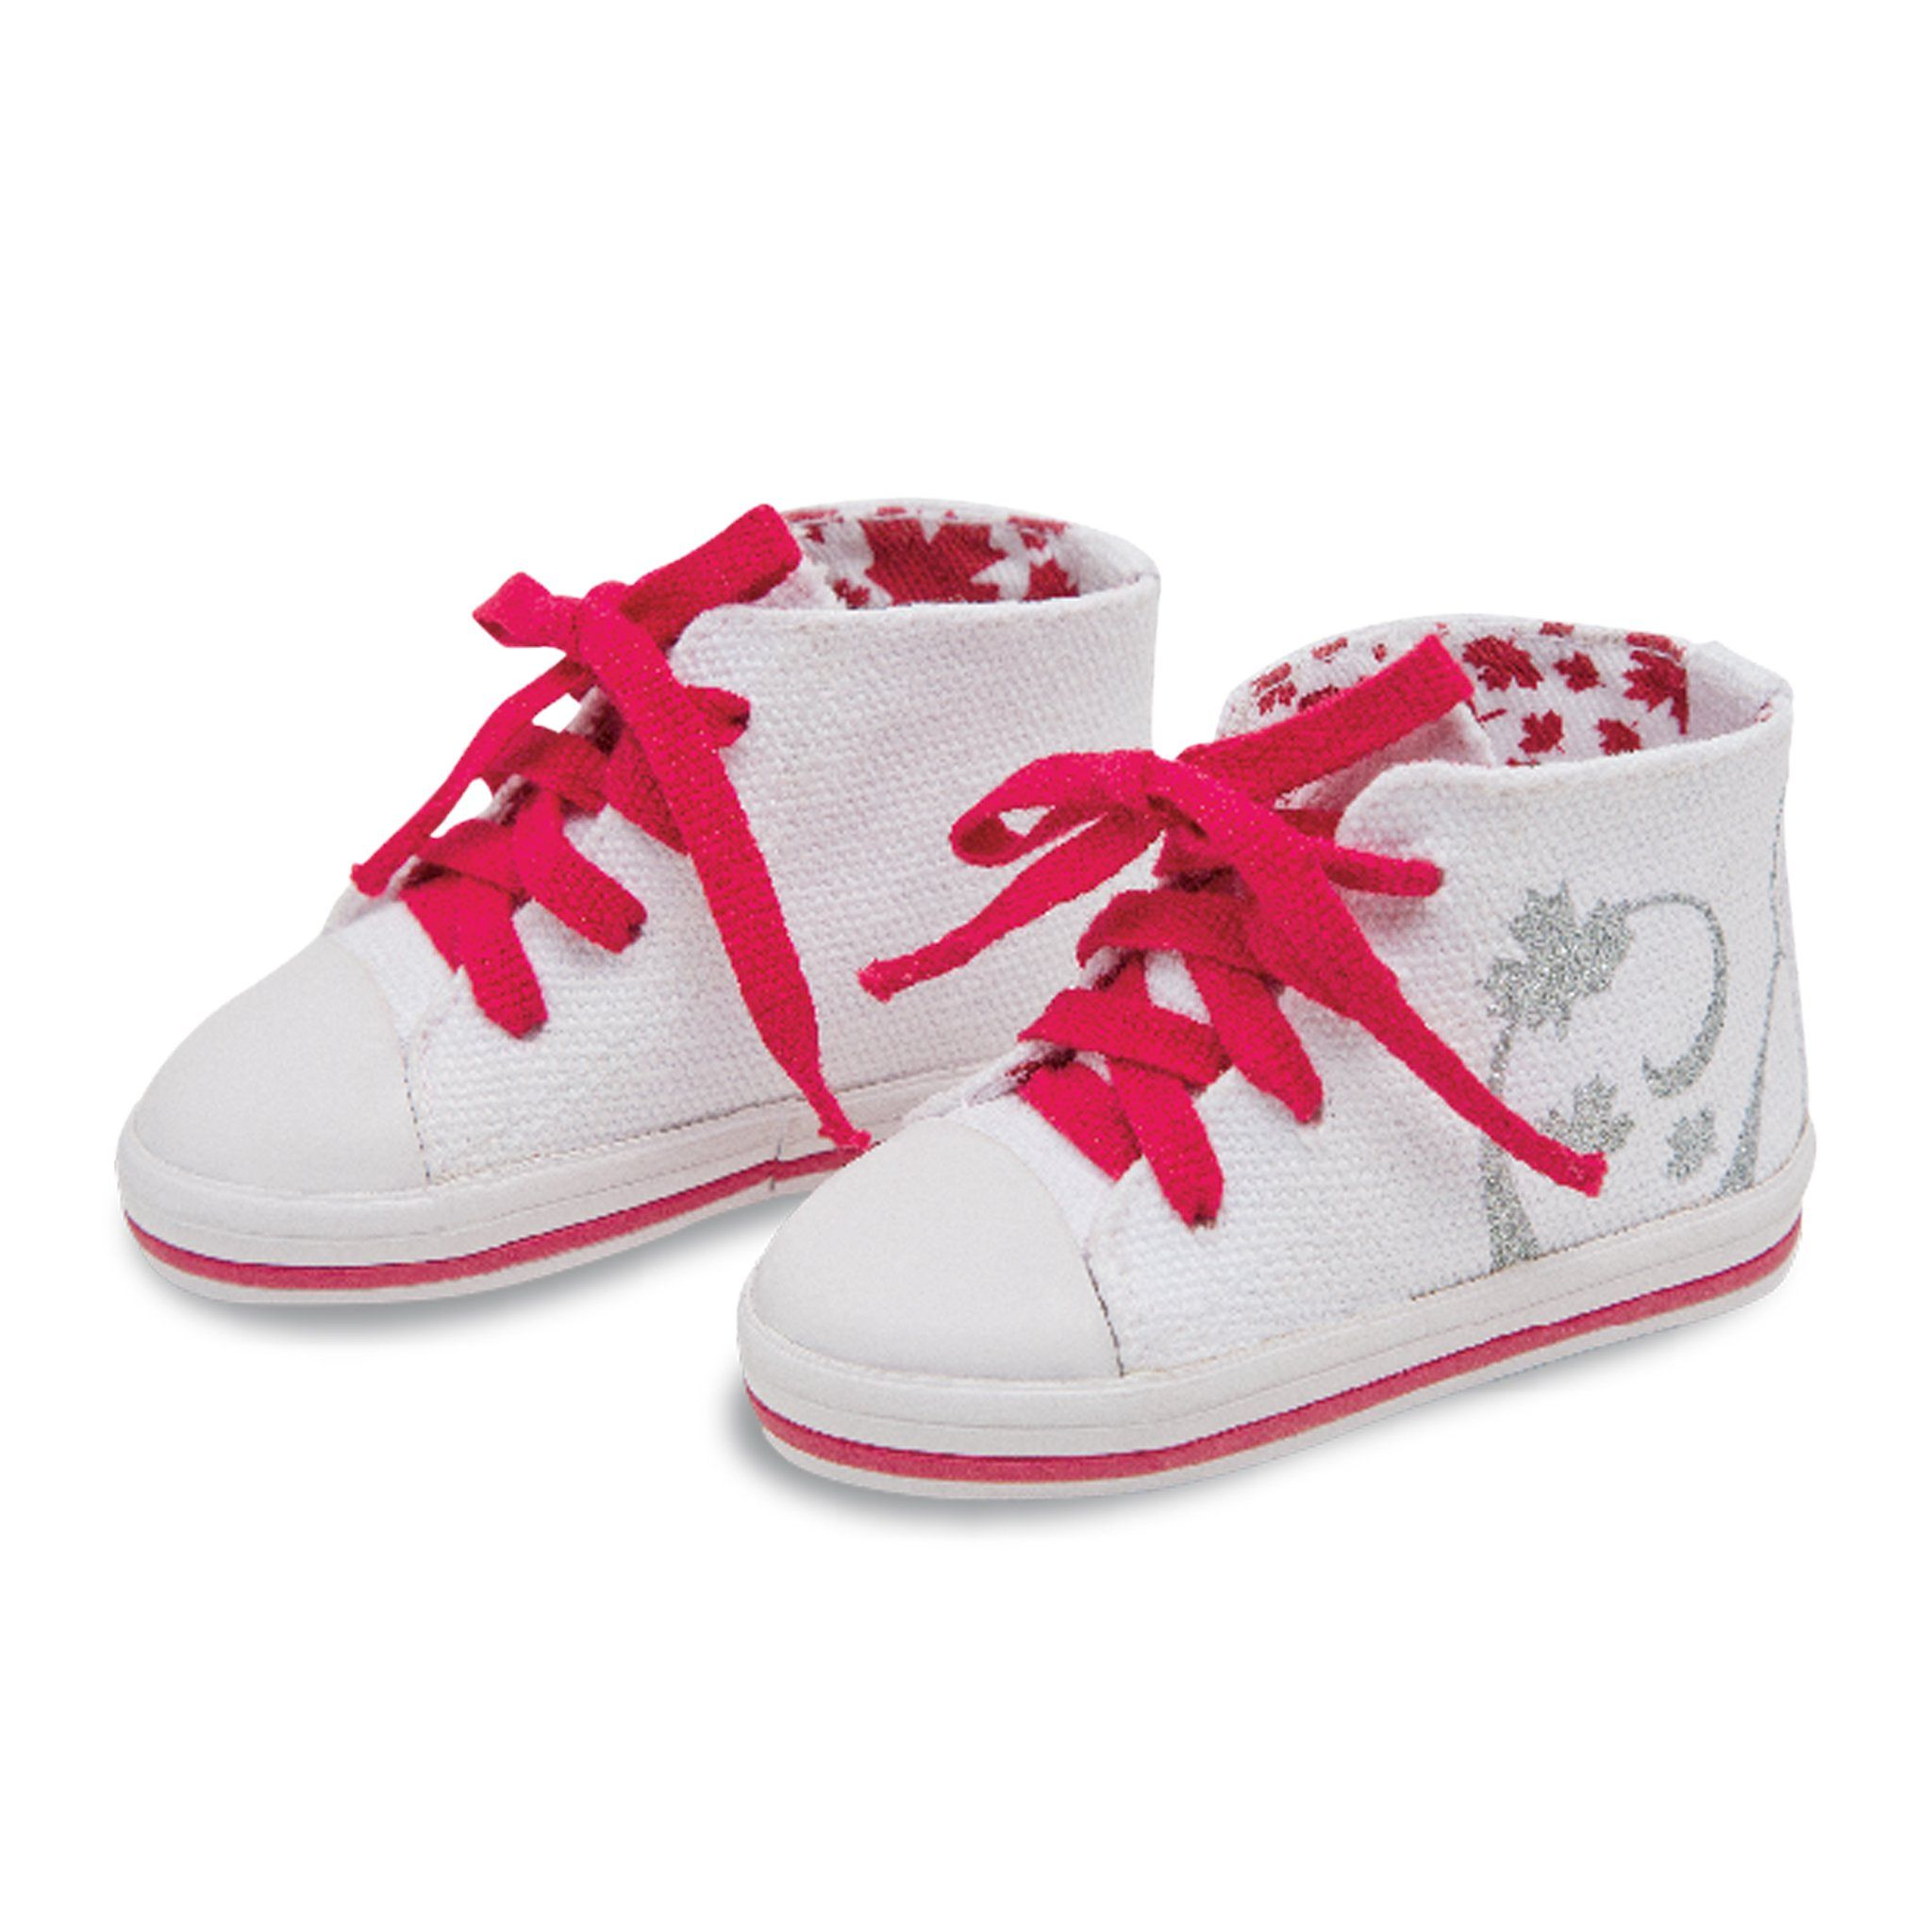 Strong and Free white runners with red laces fits all 18 inch dolls.